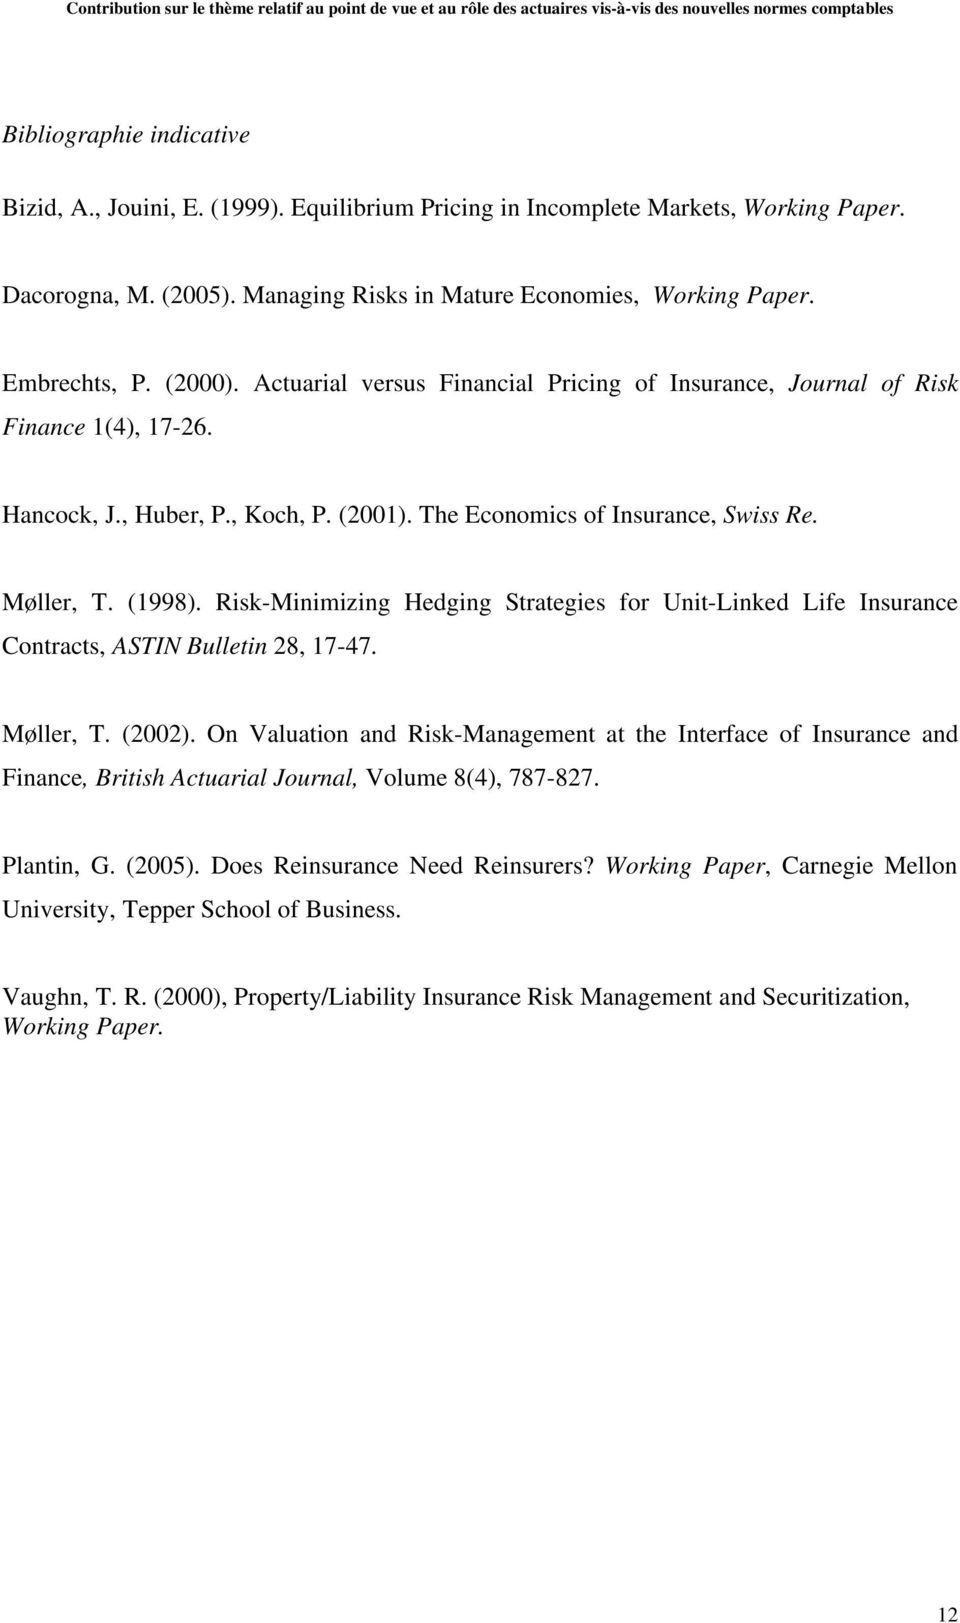 Risk-Minimizing Hedging Strategies for Unit-Linked Life Insurance Contracts, ASTIN Bulletin 28, 17-47. Møller, T. (2002).